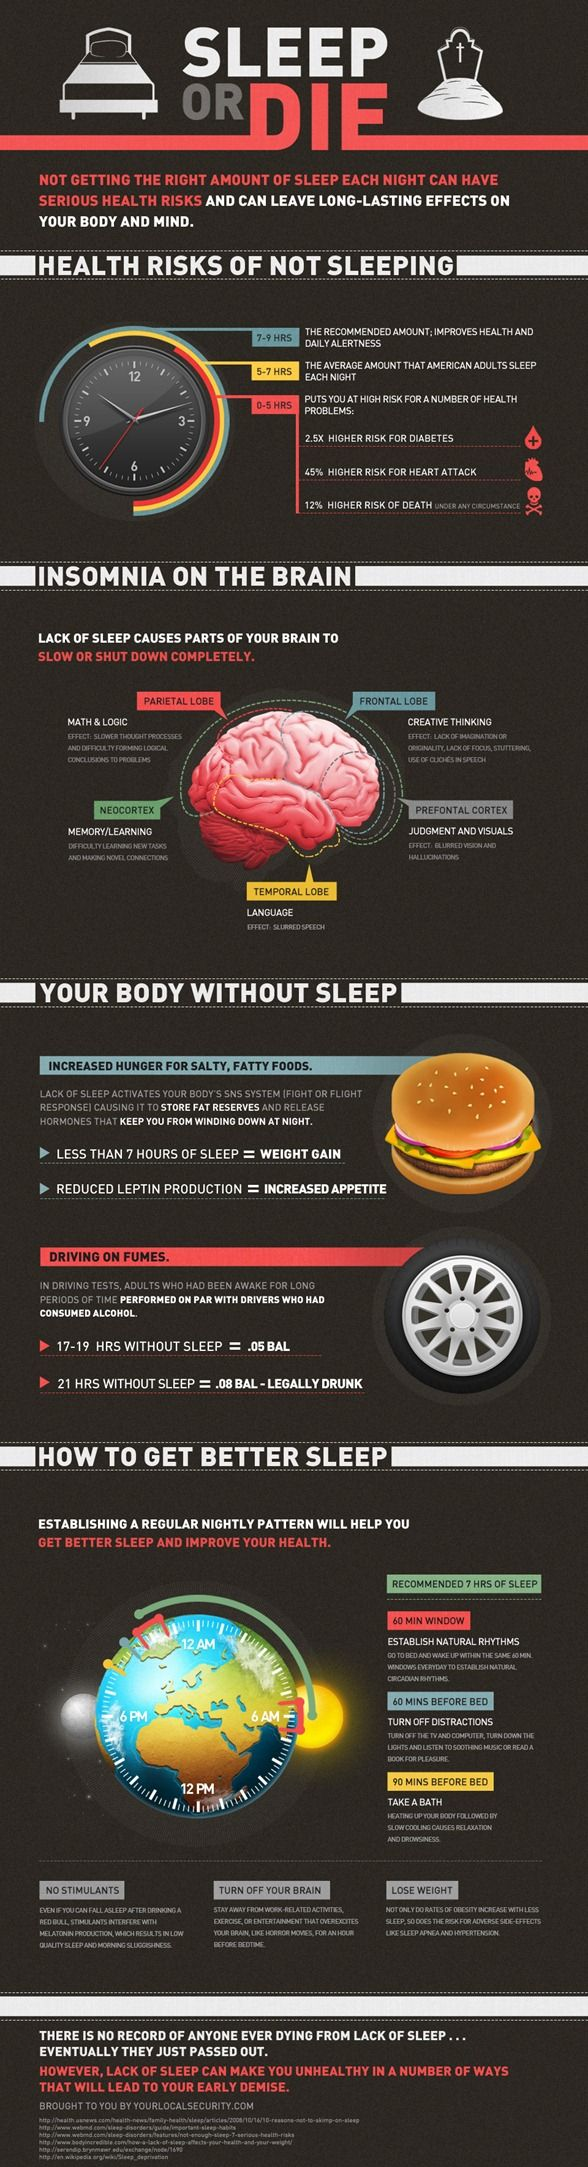 sleep health infographic- especially important for night nurses to pay attention to...